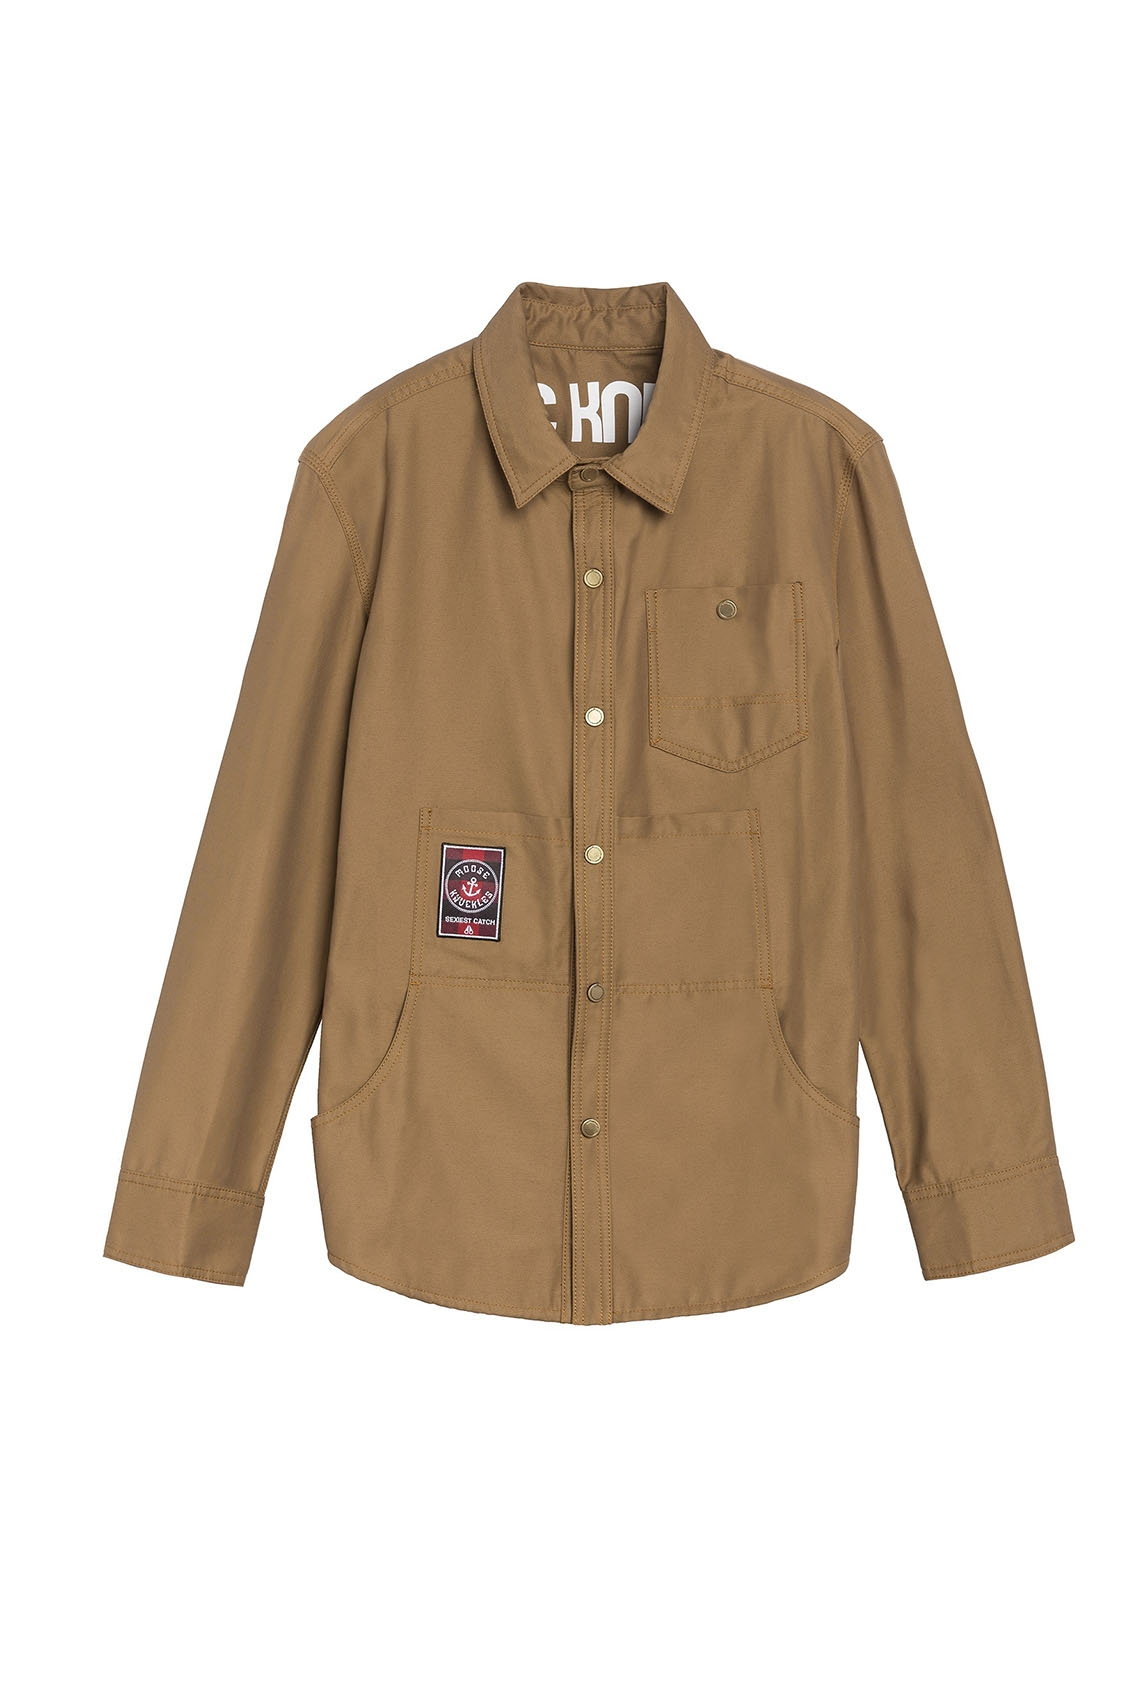 moose-knuckles_core-utility-shirt4